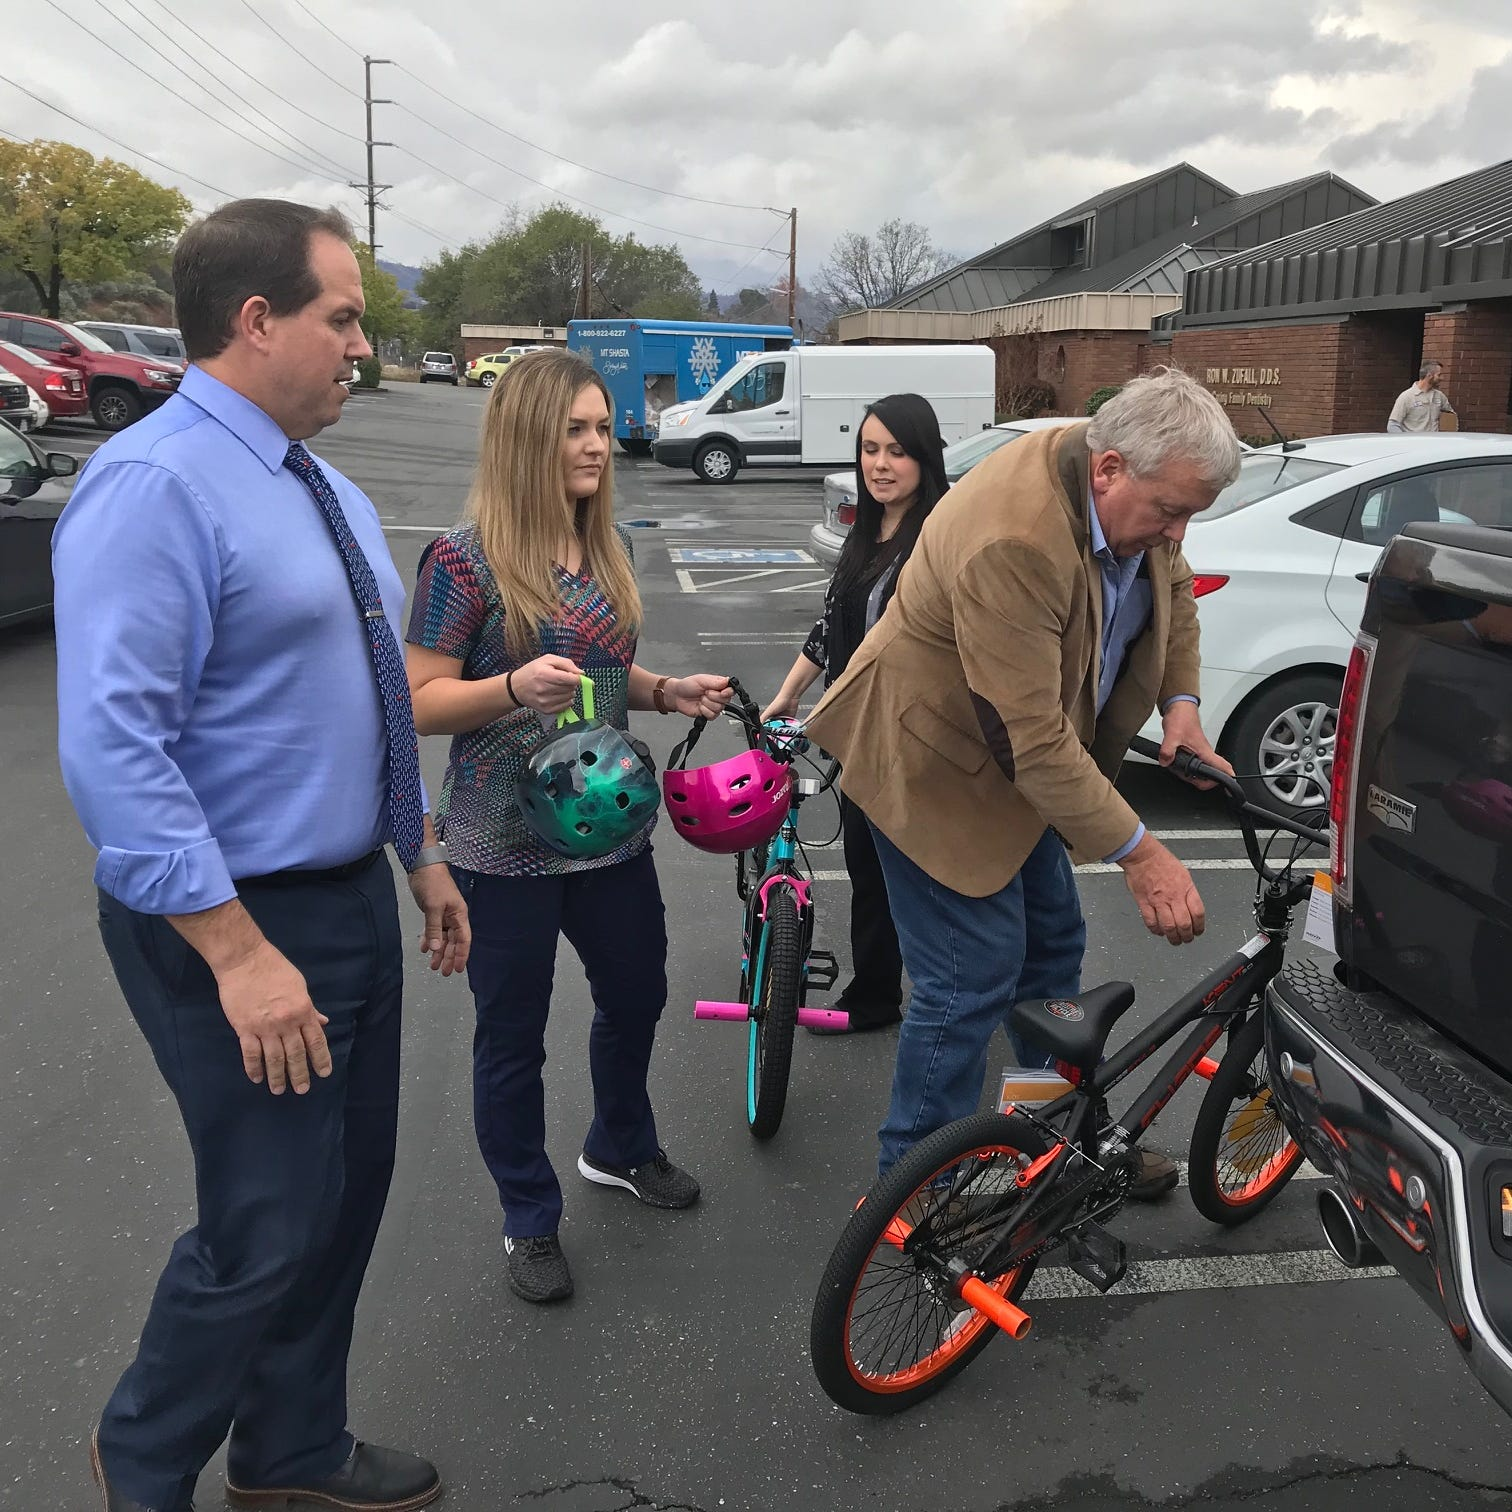 The Carr Fire took his home and a dear friend's life. But he's still giving bikes to kids